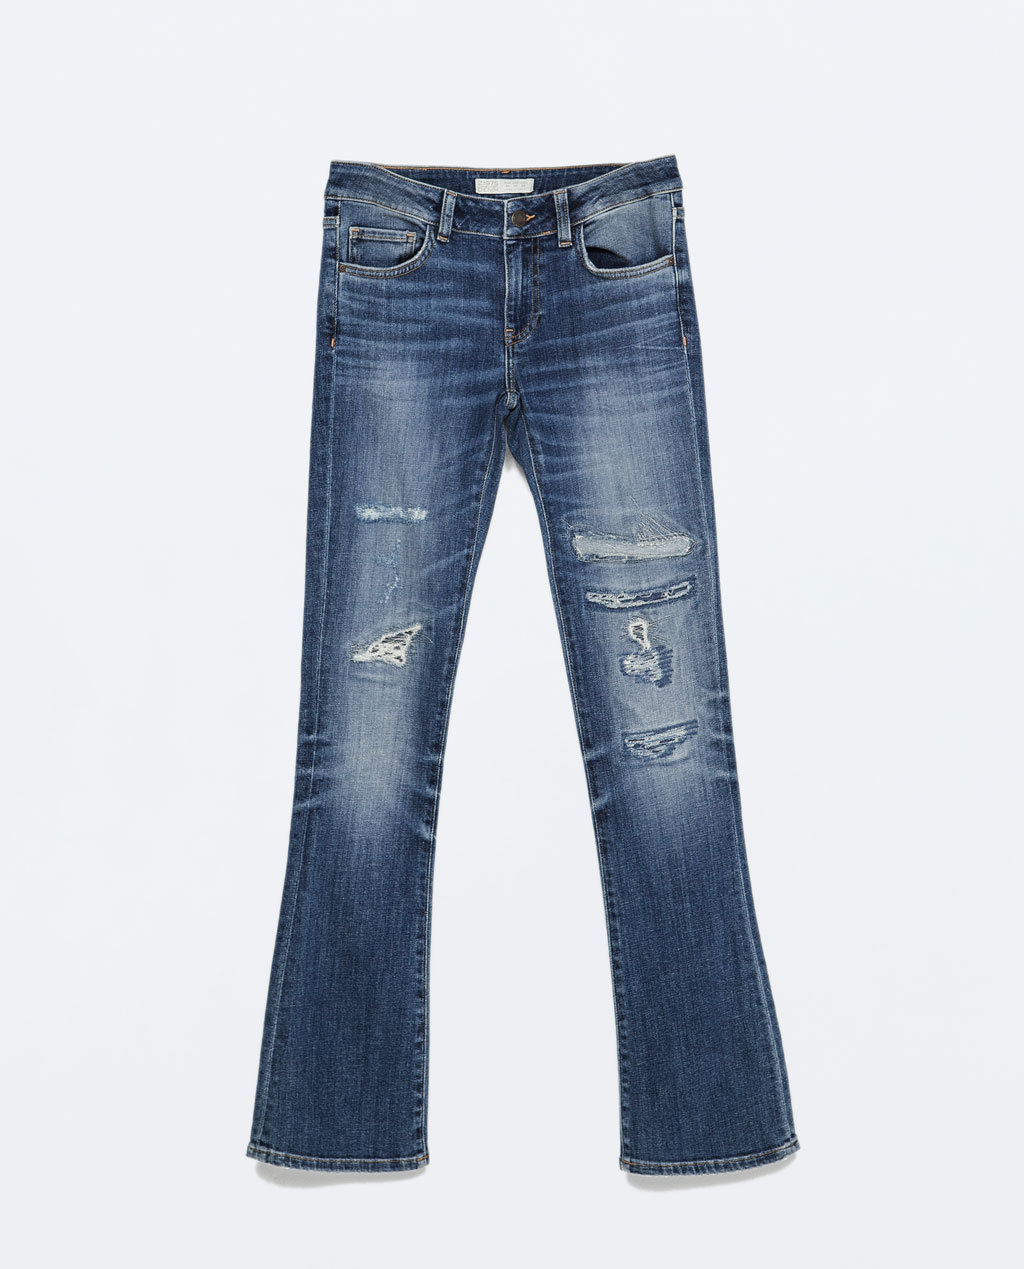 Medium Wash Bootcut Jeans - style: bootcut; length: standard; pattern: plain; pocket detail: traditional 5 pocket; waist: mid/regular rise; predominant colour: denim; occasions: casual; fibres: cotton - stretch; jeans detail: whiskering, shading down centre of thigh, rips; texture group: denim; pattern type: fabric; season: s/s 2015